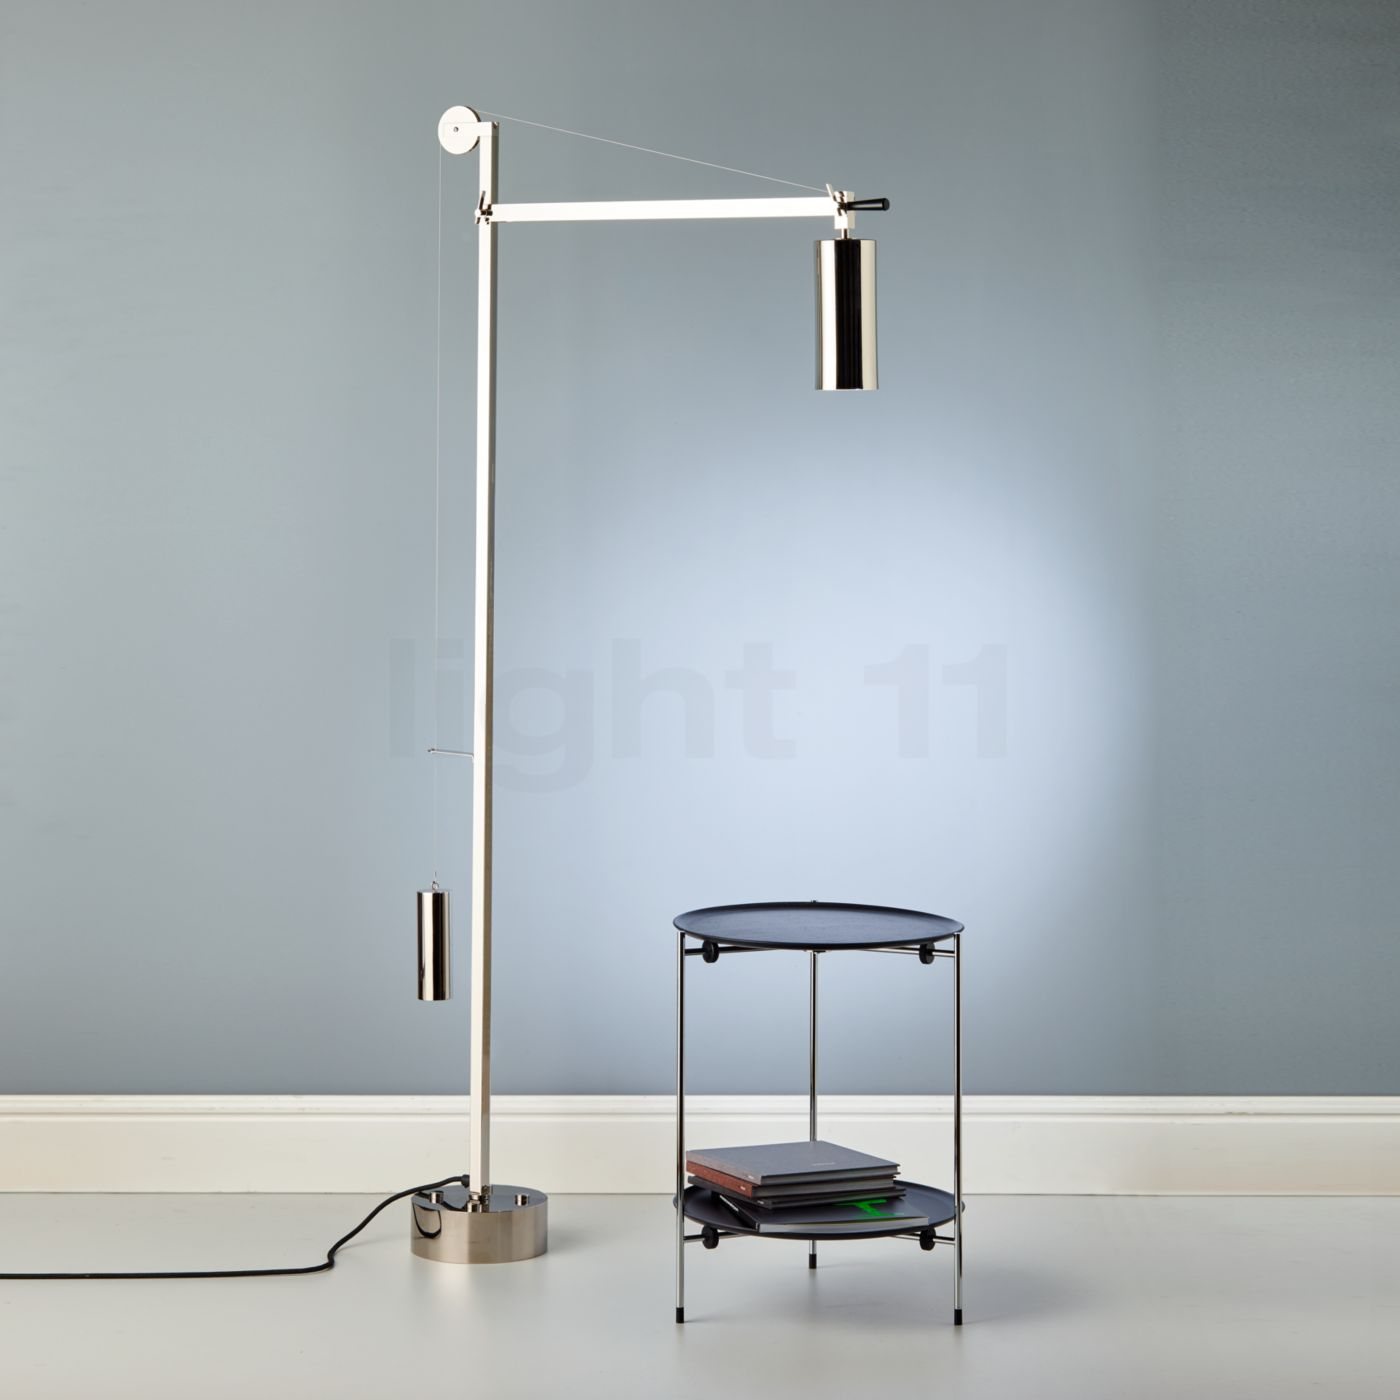 Buy tecnolumen bauhaus bh 23 floor lamp at light11 aloadofball